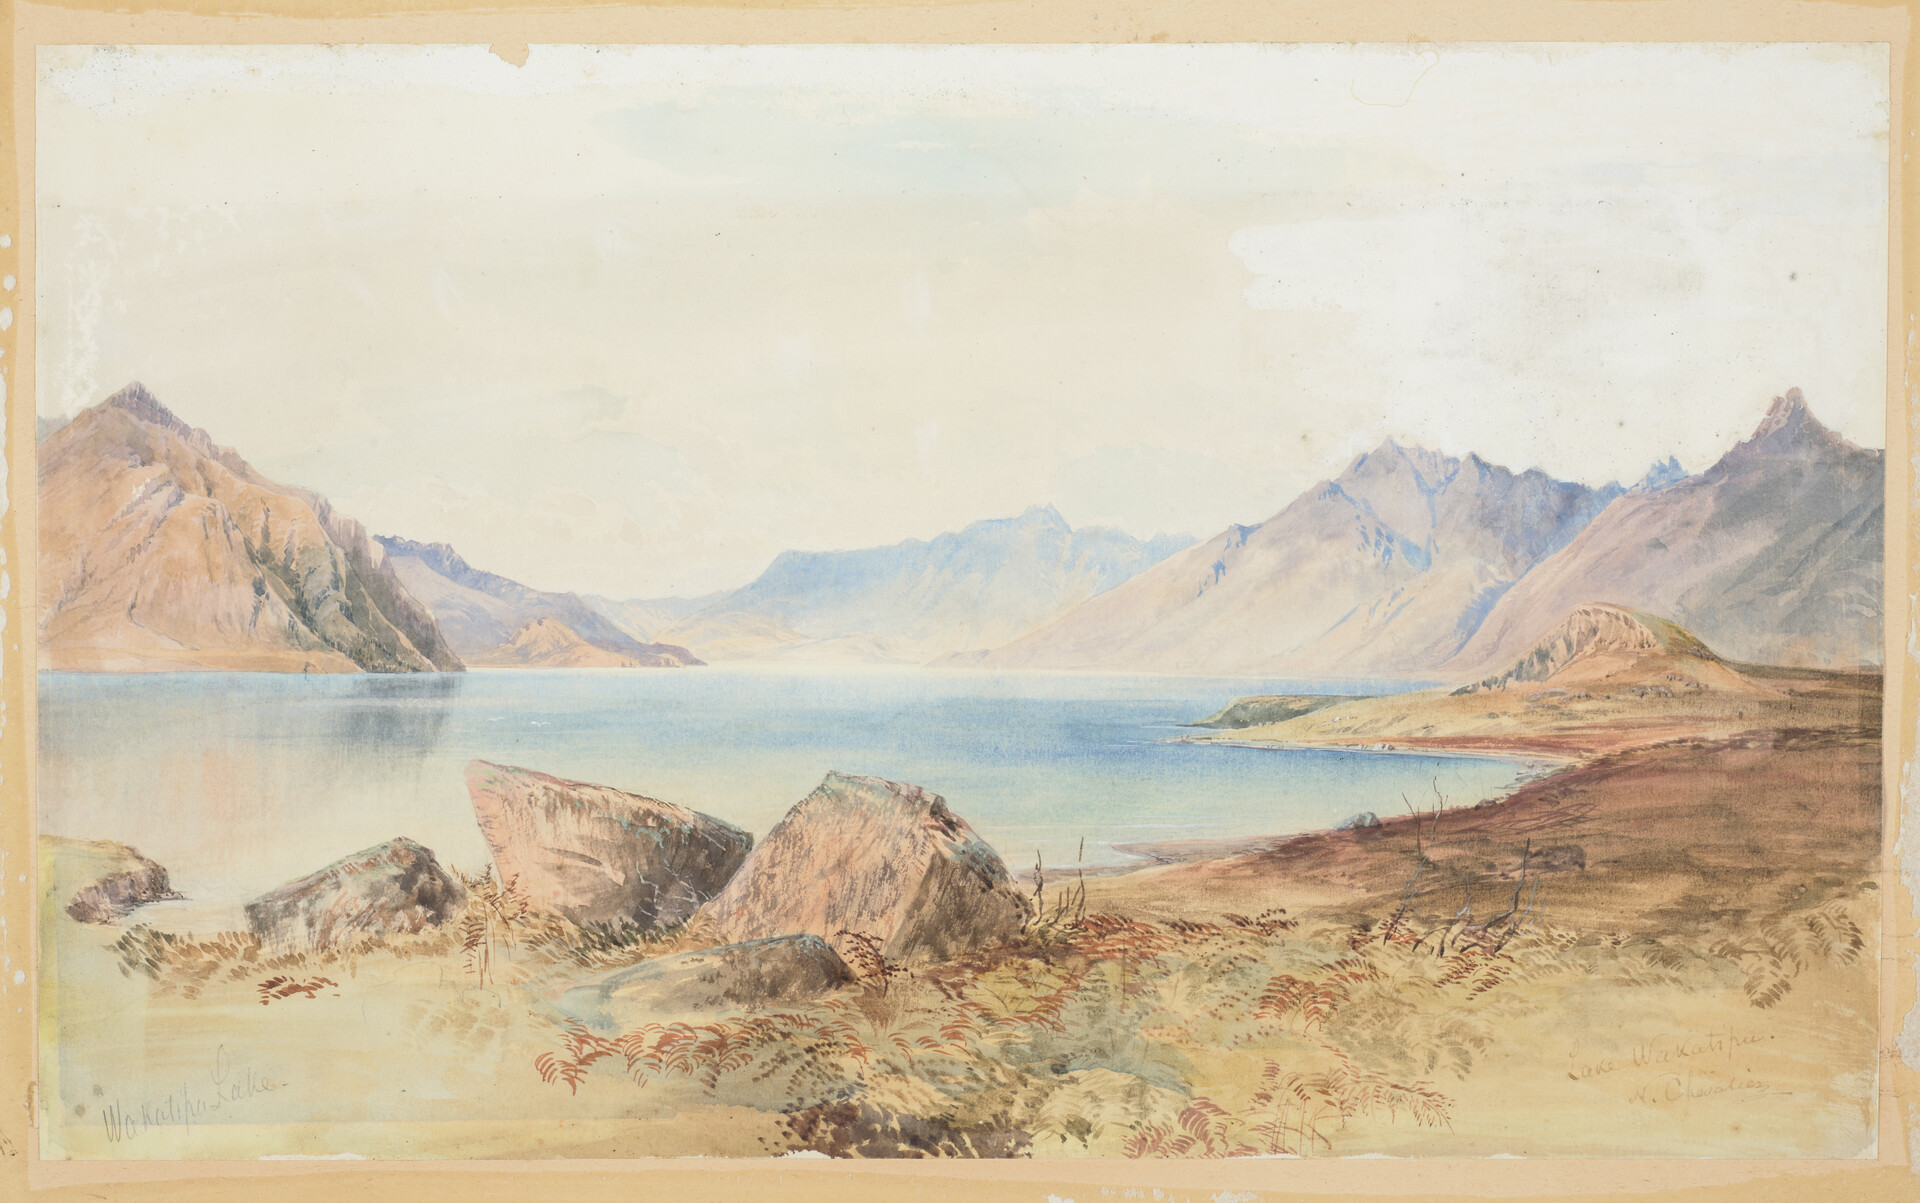 Lake Wakatipu - Nicholas Chevalier Watercolour